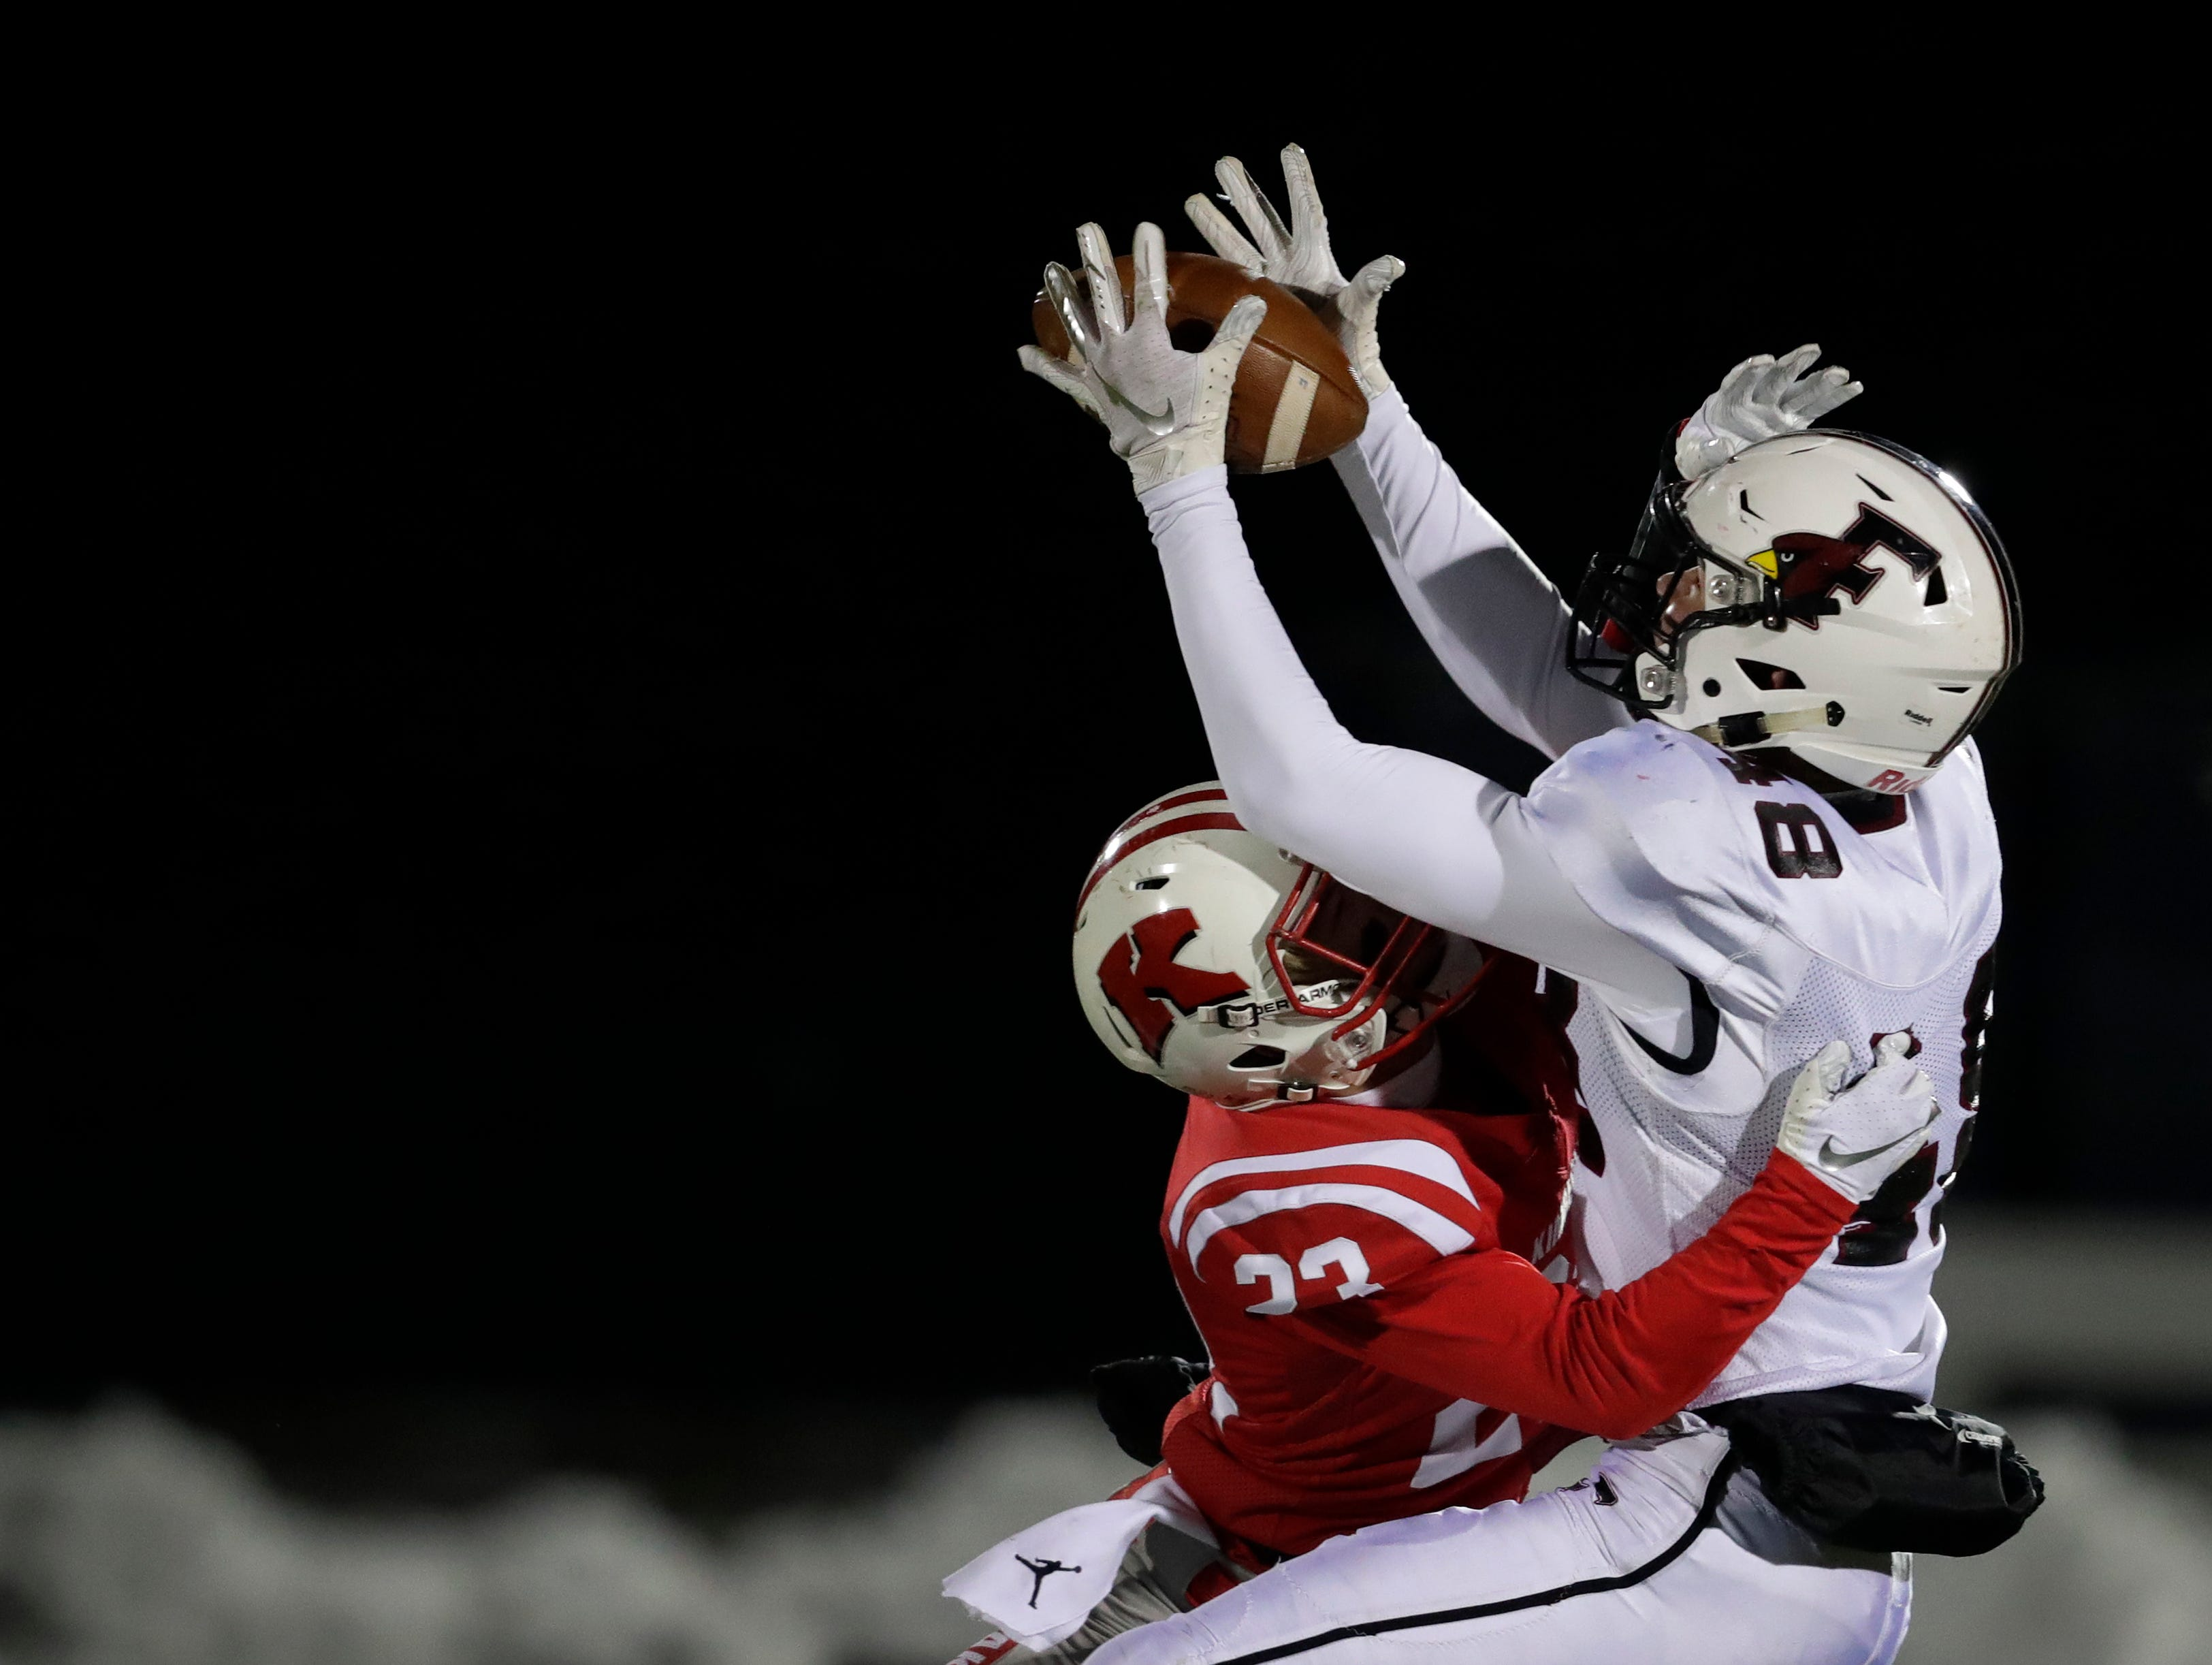 Kimberly High School's Zach Olson (23) breaks up a pass intended for against Fond du Lac High School's Adam Hopper (48) during their WIAA Division 1 state semifinal football game Friday, November 9, 2018, at Titan Stadium in Oshkosh, Wis. 